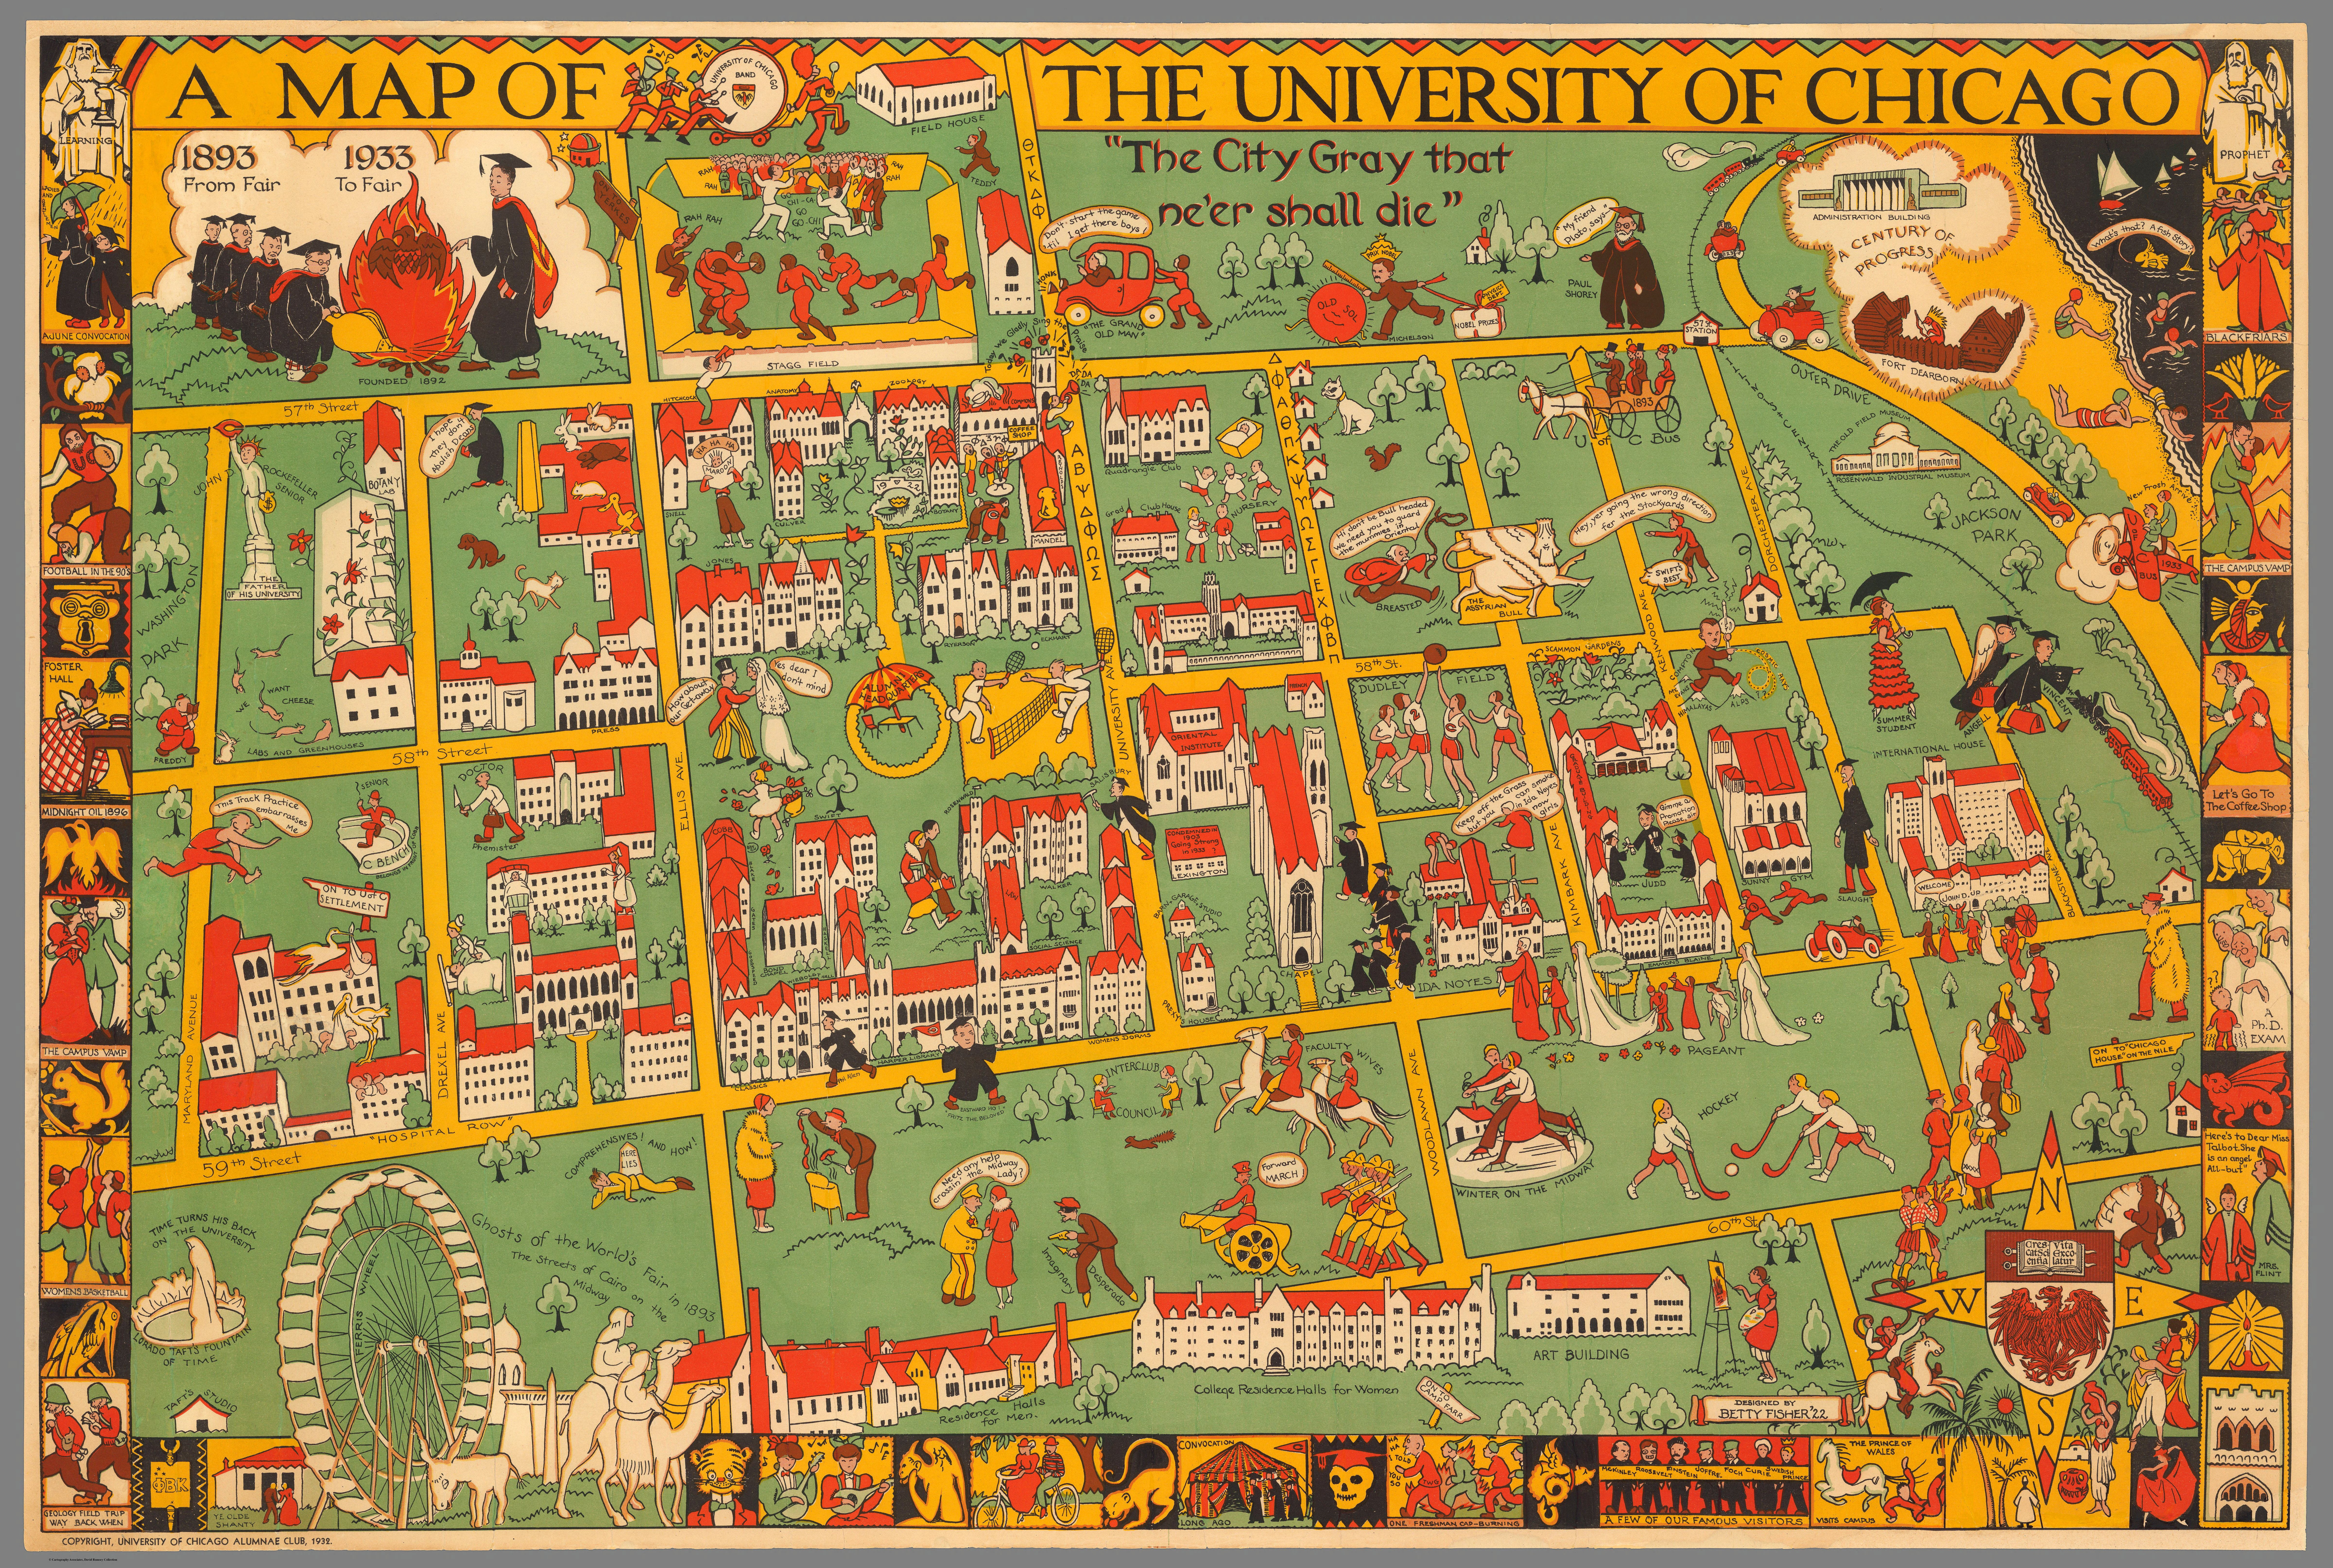 University Of Chicago Campus Map Putting it all on the map | The University of Chicago Magazine University Of Chicago Campus Map